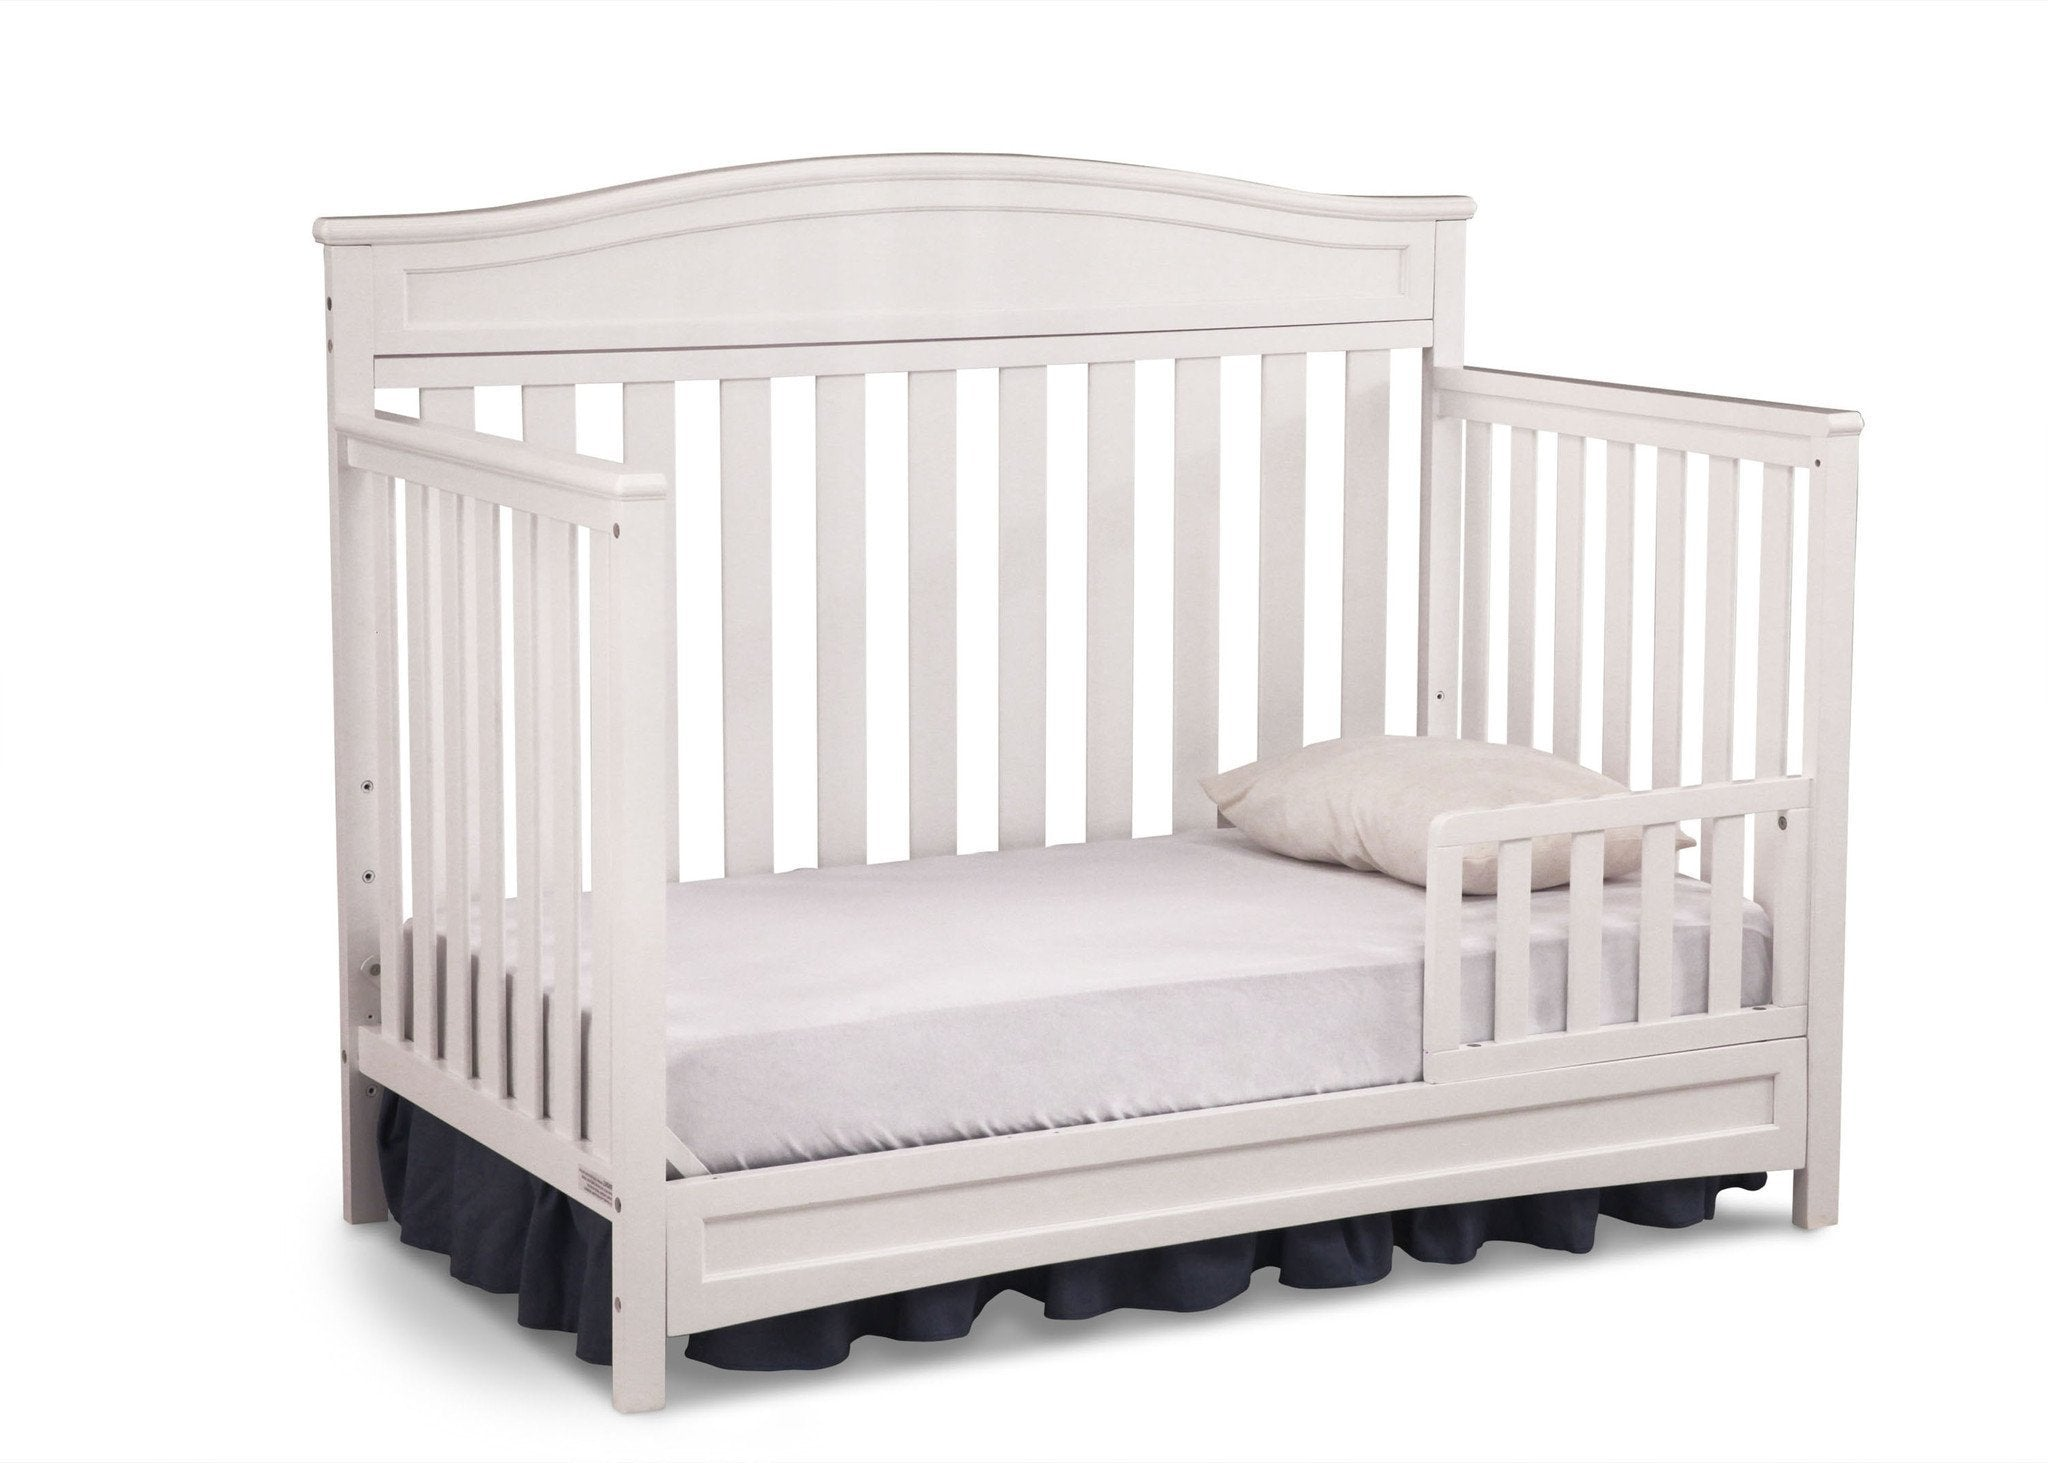 Delta Children White (100) Essington 4-in-1 Crib angled conversion to toddler bed a4a